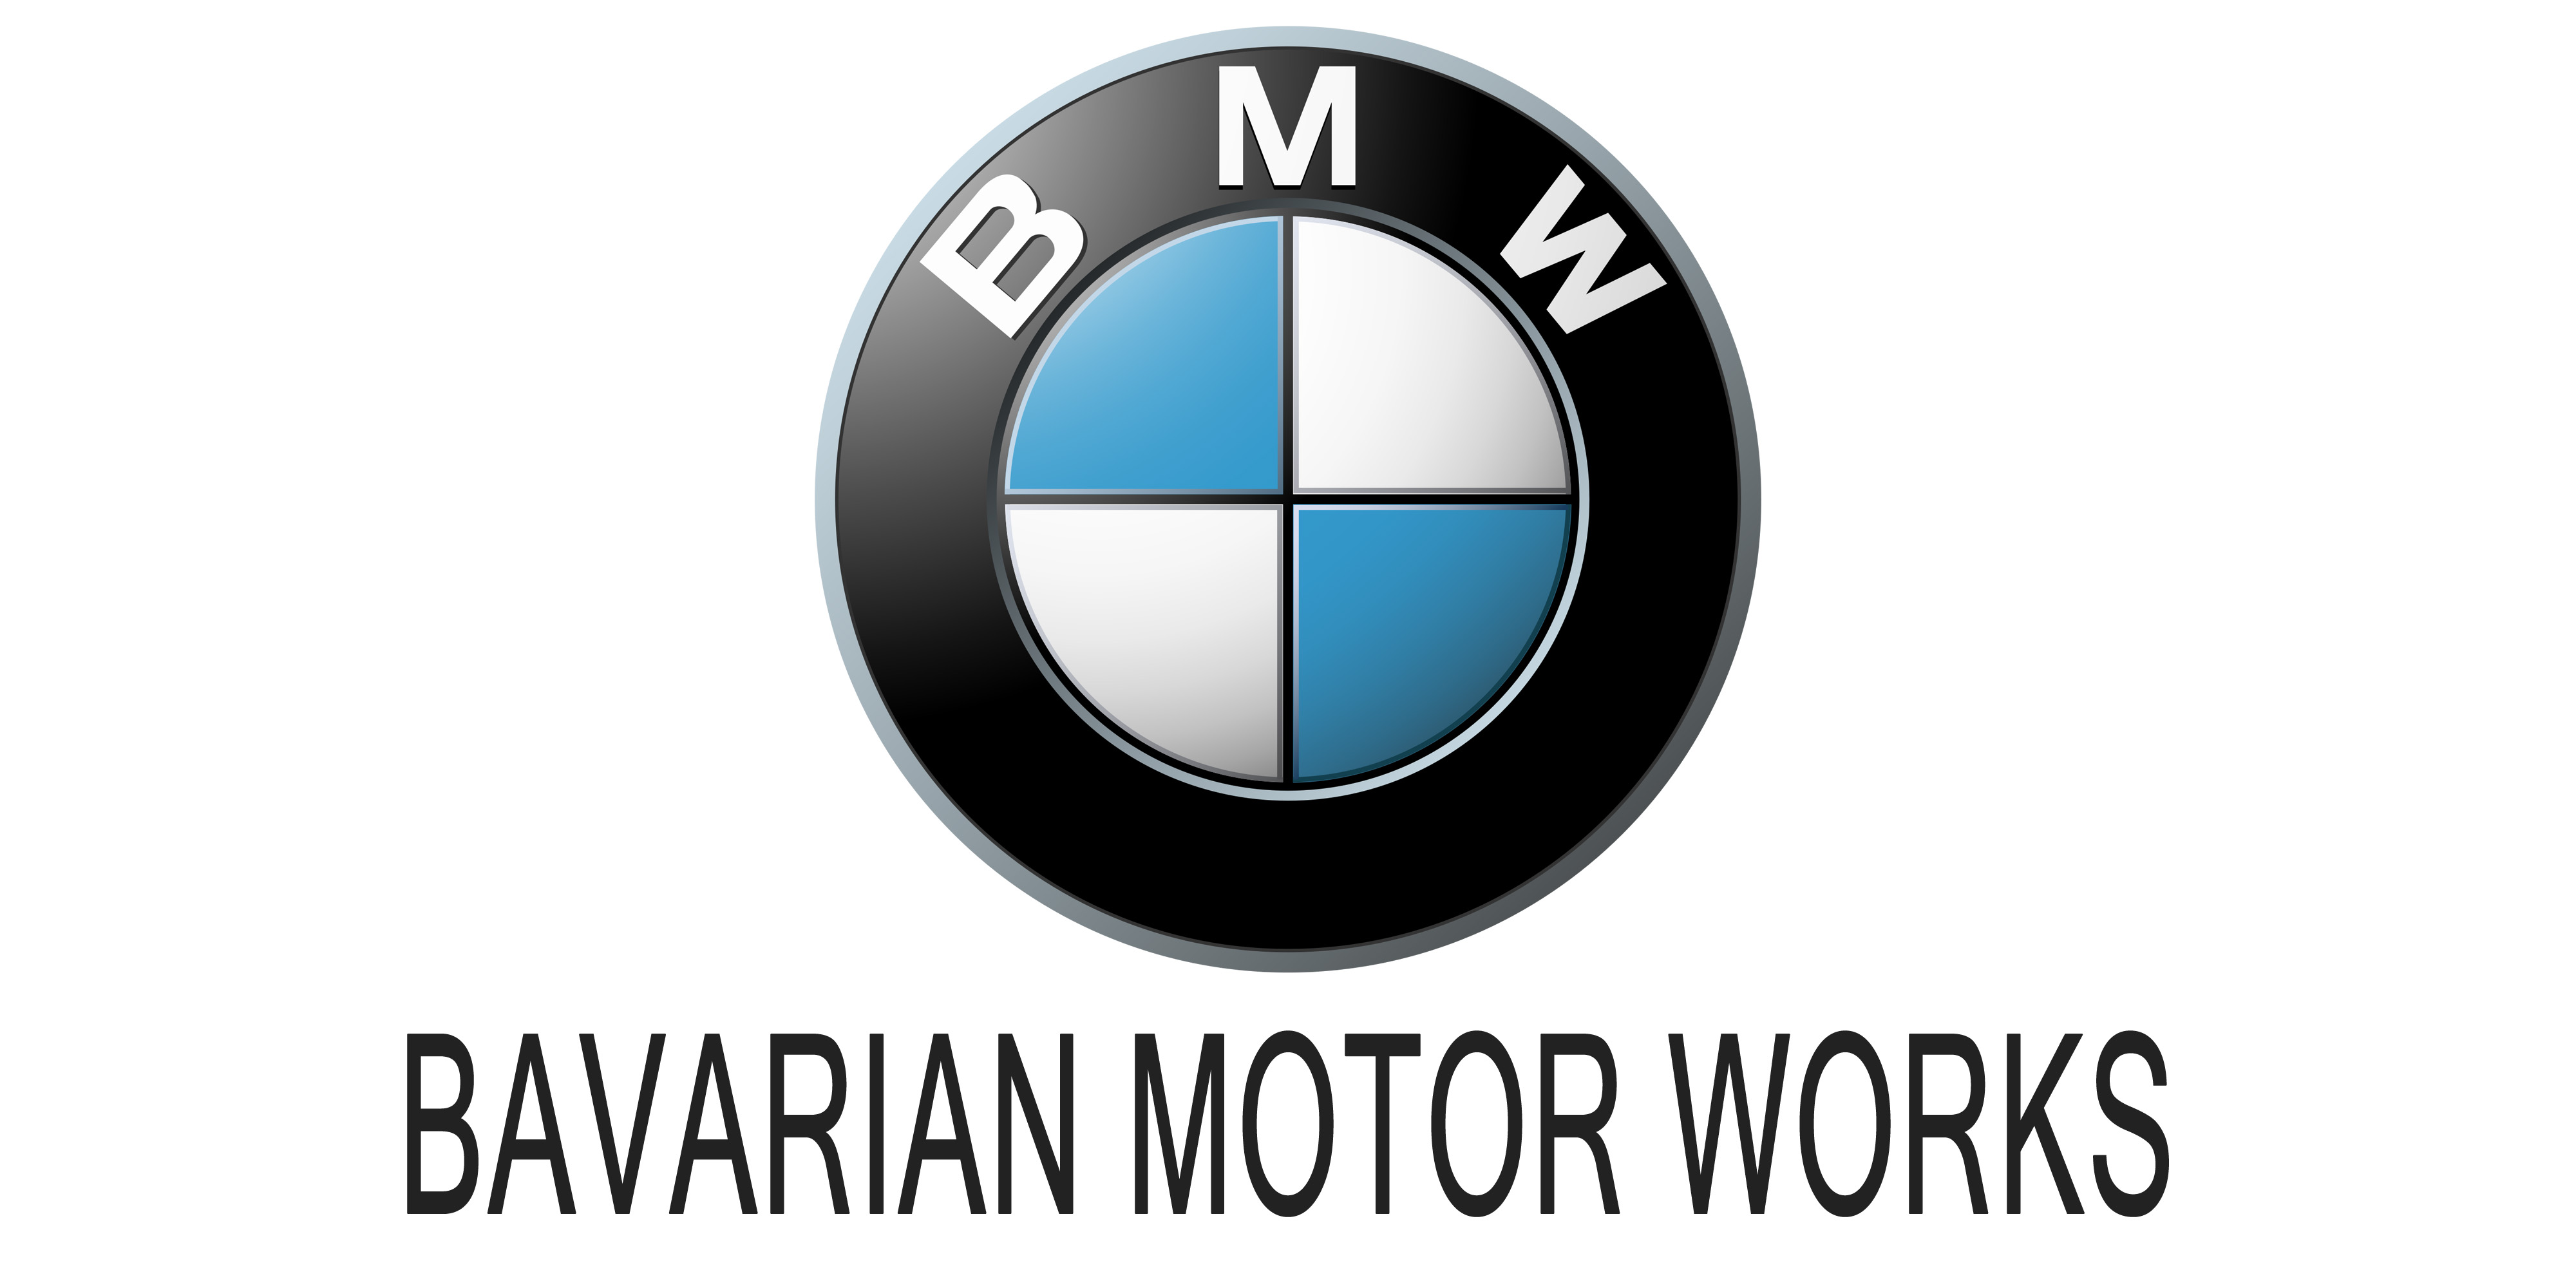 German Car Brands Companies And Manufacturers World